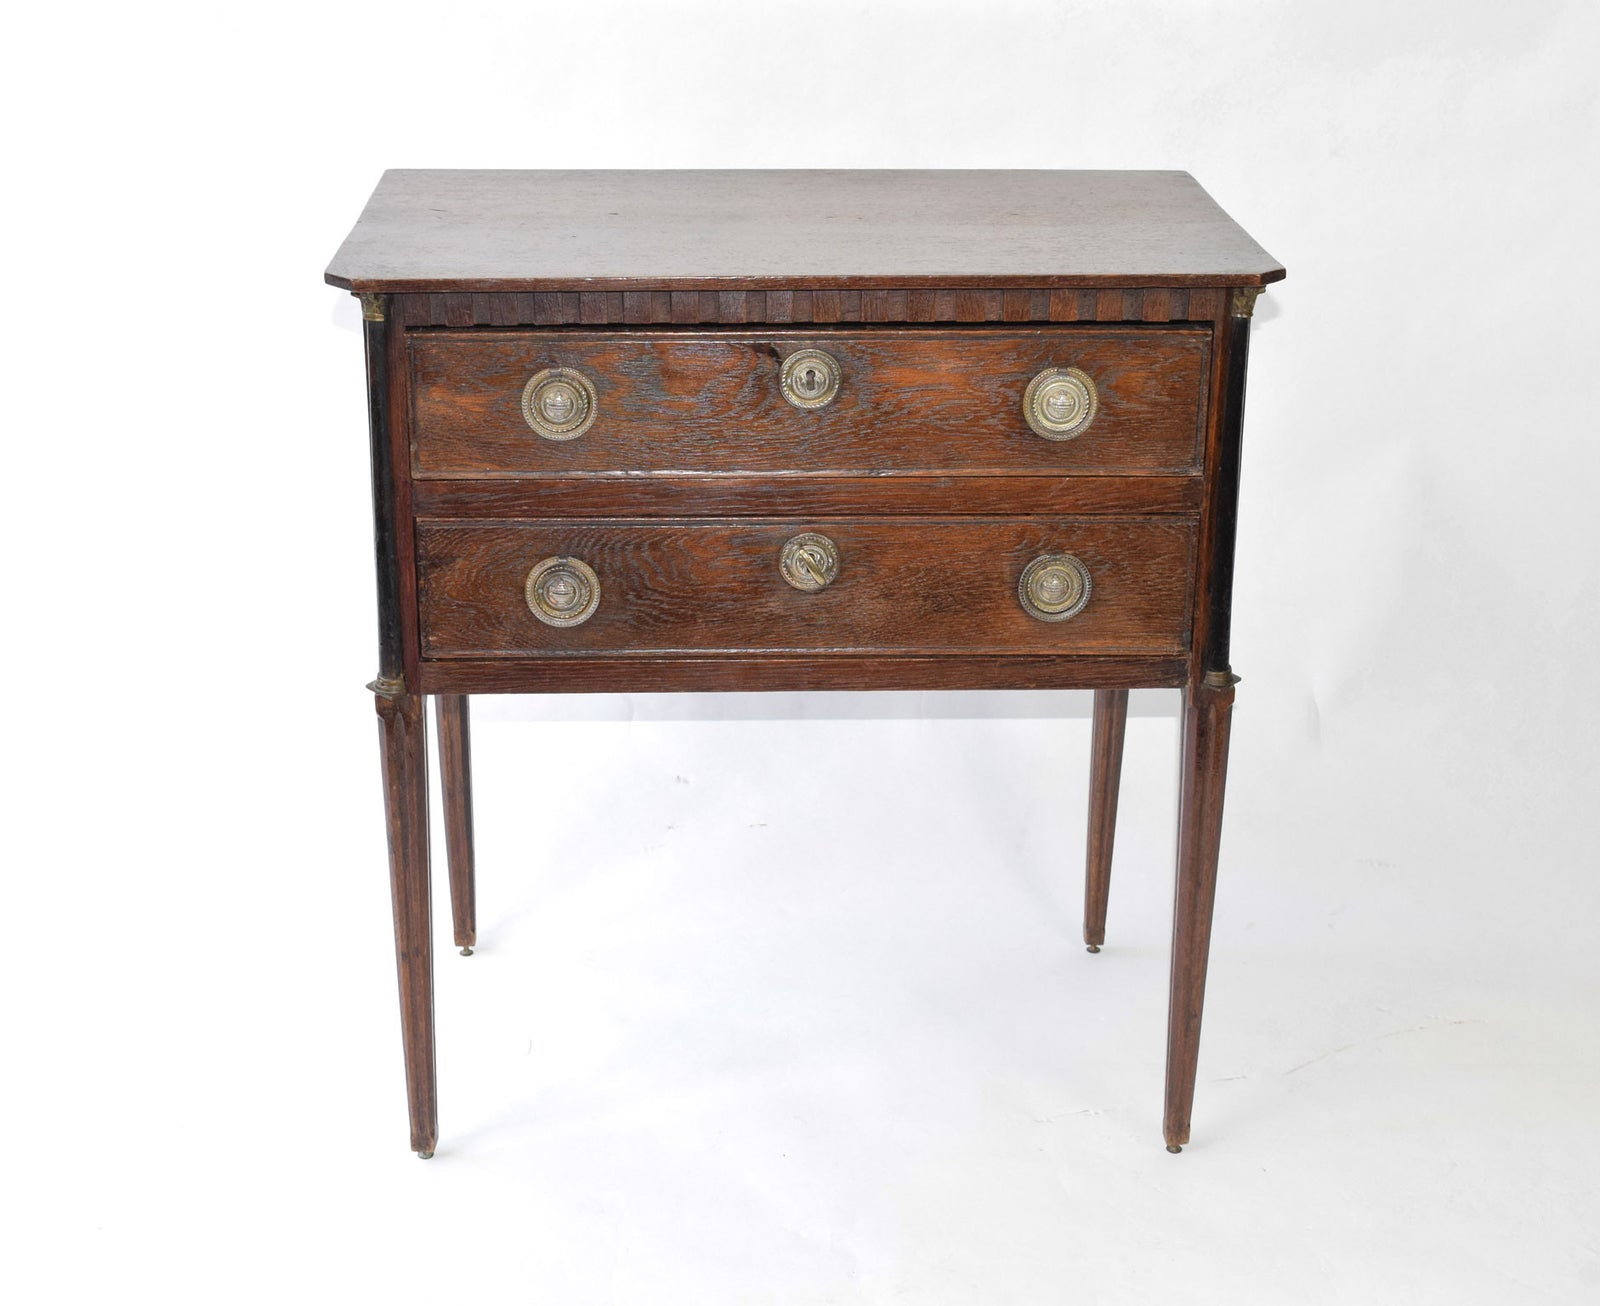 oak bedside Cabinet in Louis XVI style